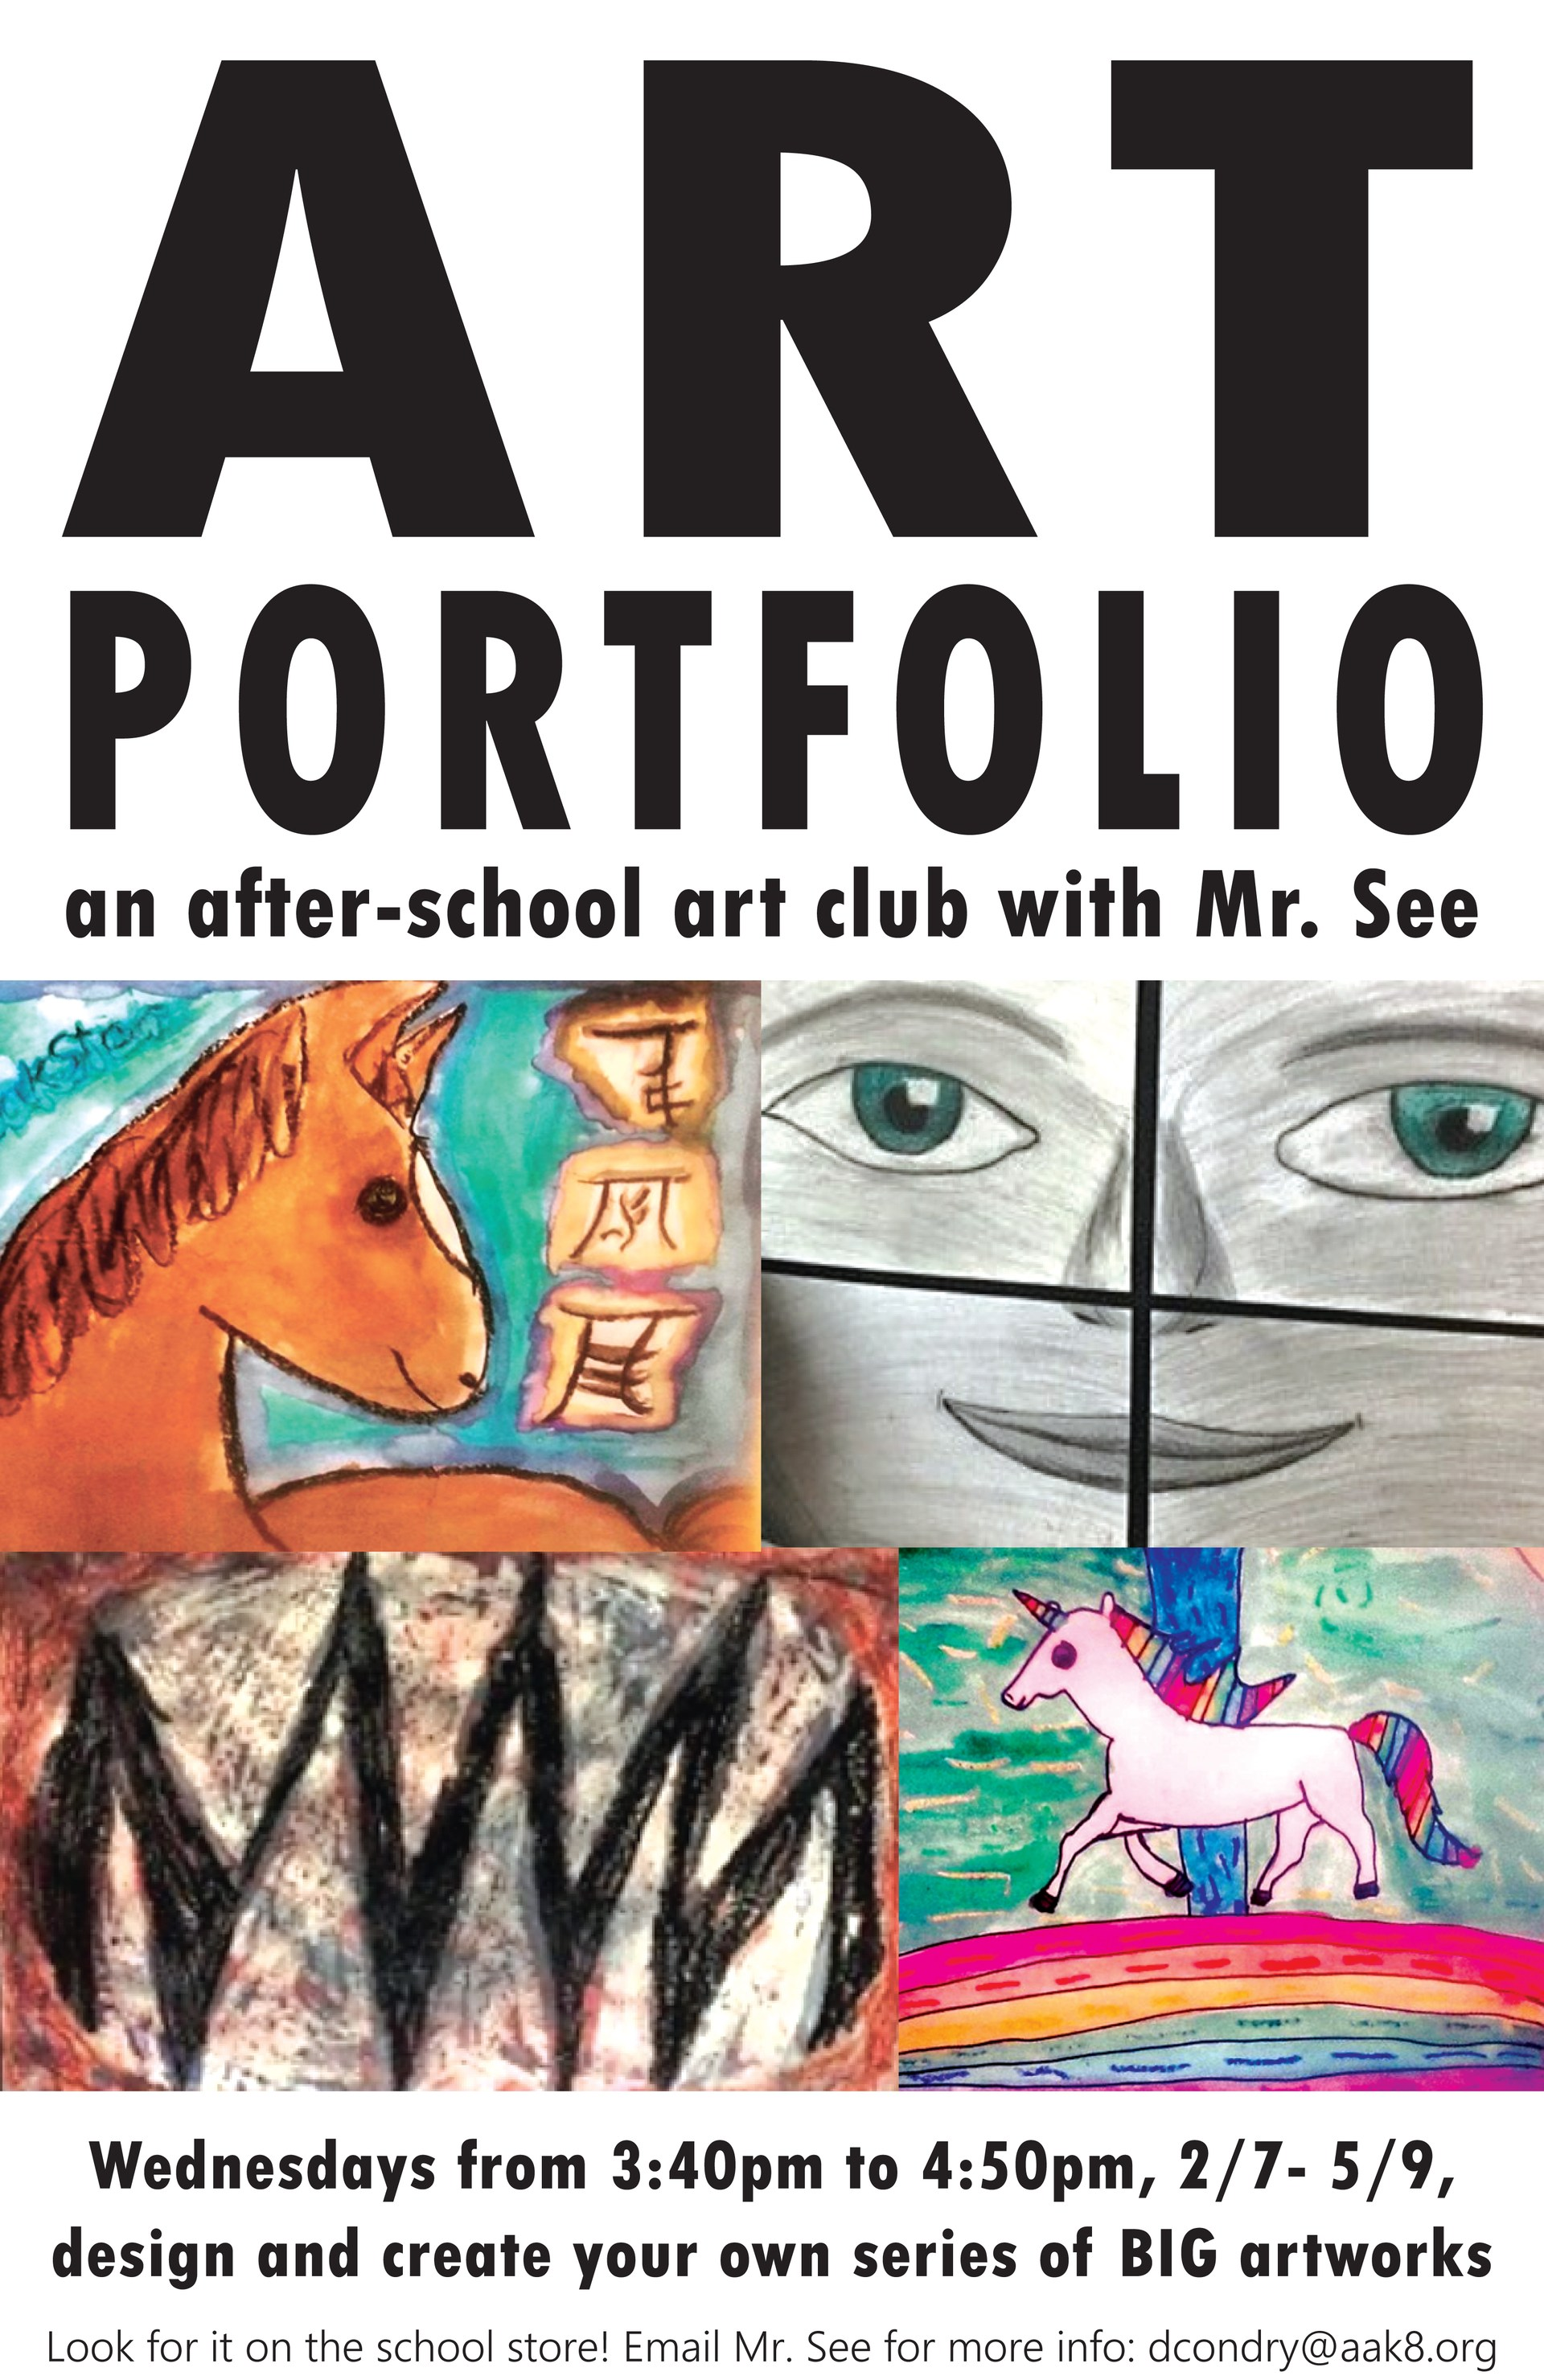 A flier informing parents that Art Portfolio club goes from 2/7 - 5/9 -- more info on the school store